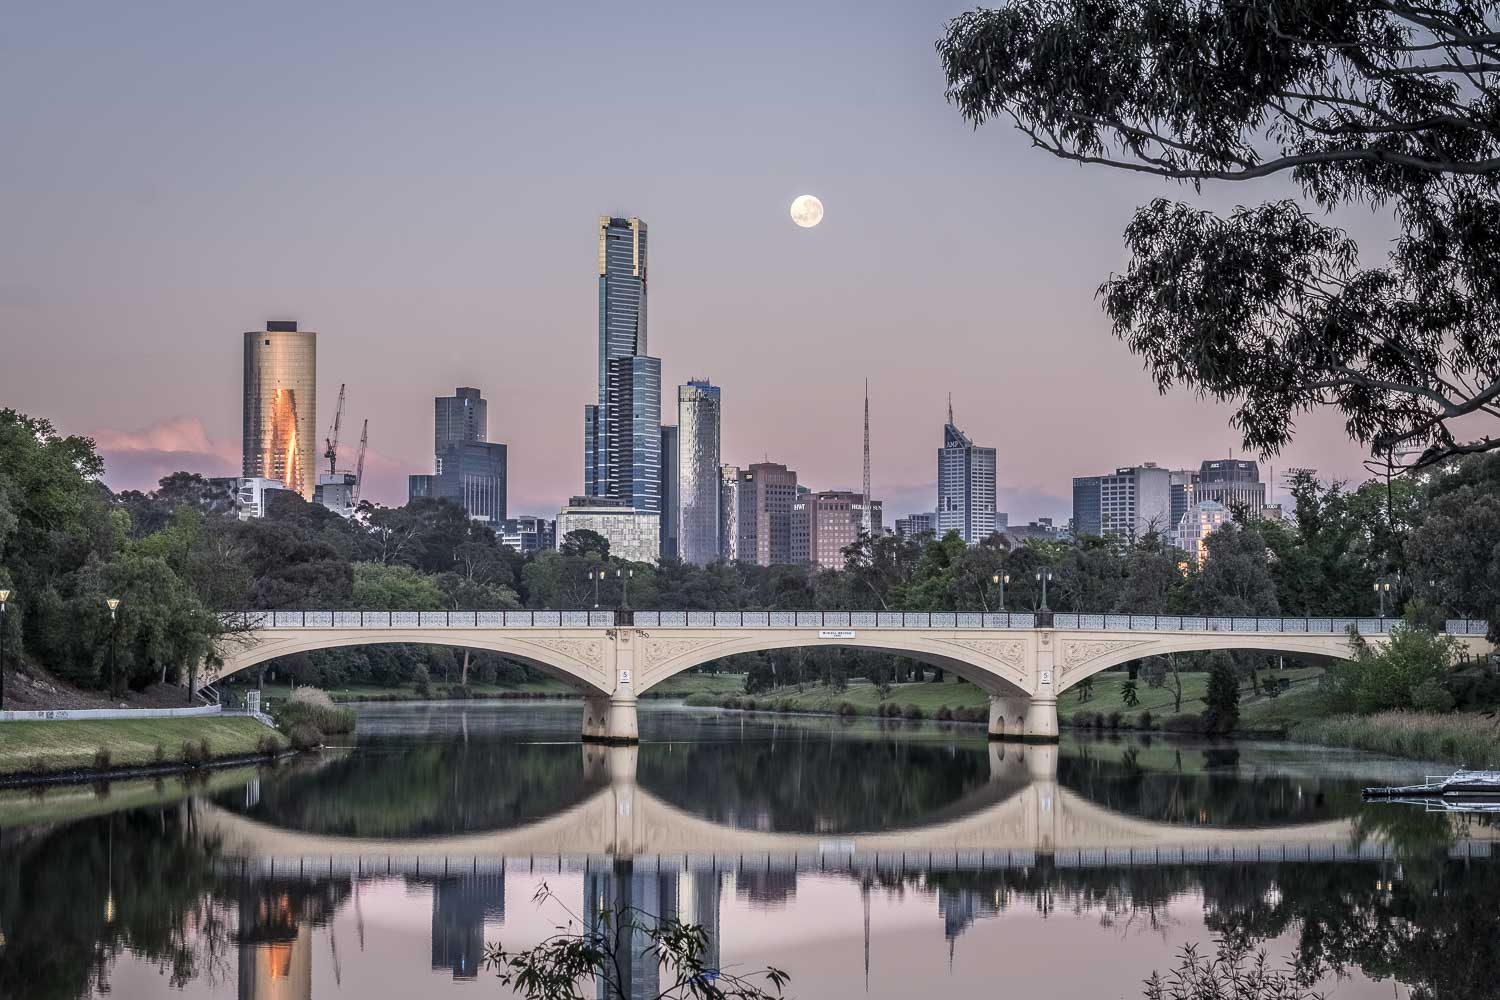 Moonrise reflections over Melbourne, Morell bridge